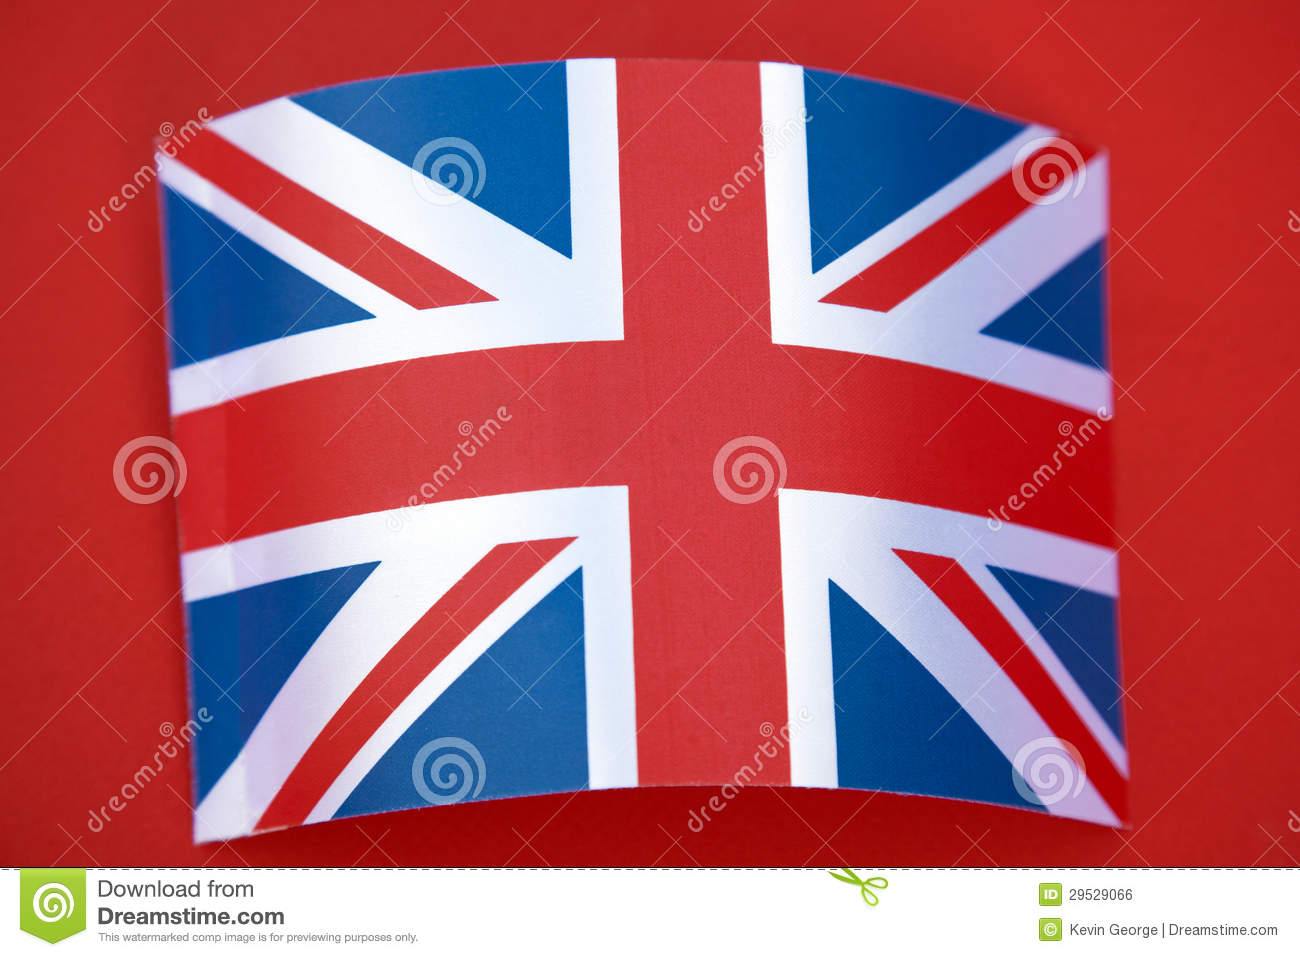 Union Jack Flag Royalty Free Stock Image   Image  29529066 RpeAa7W4